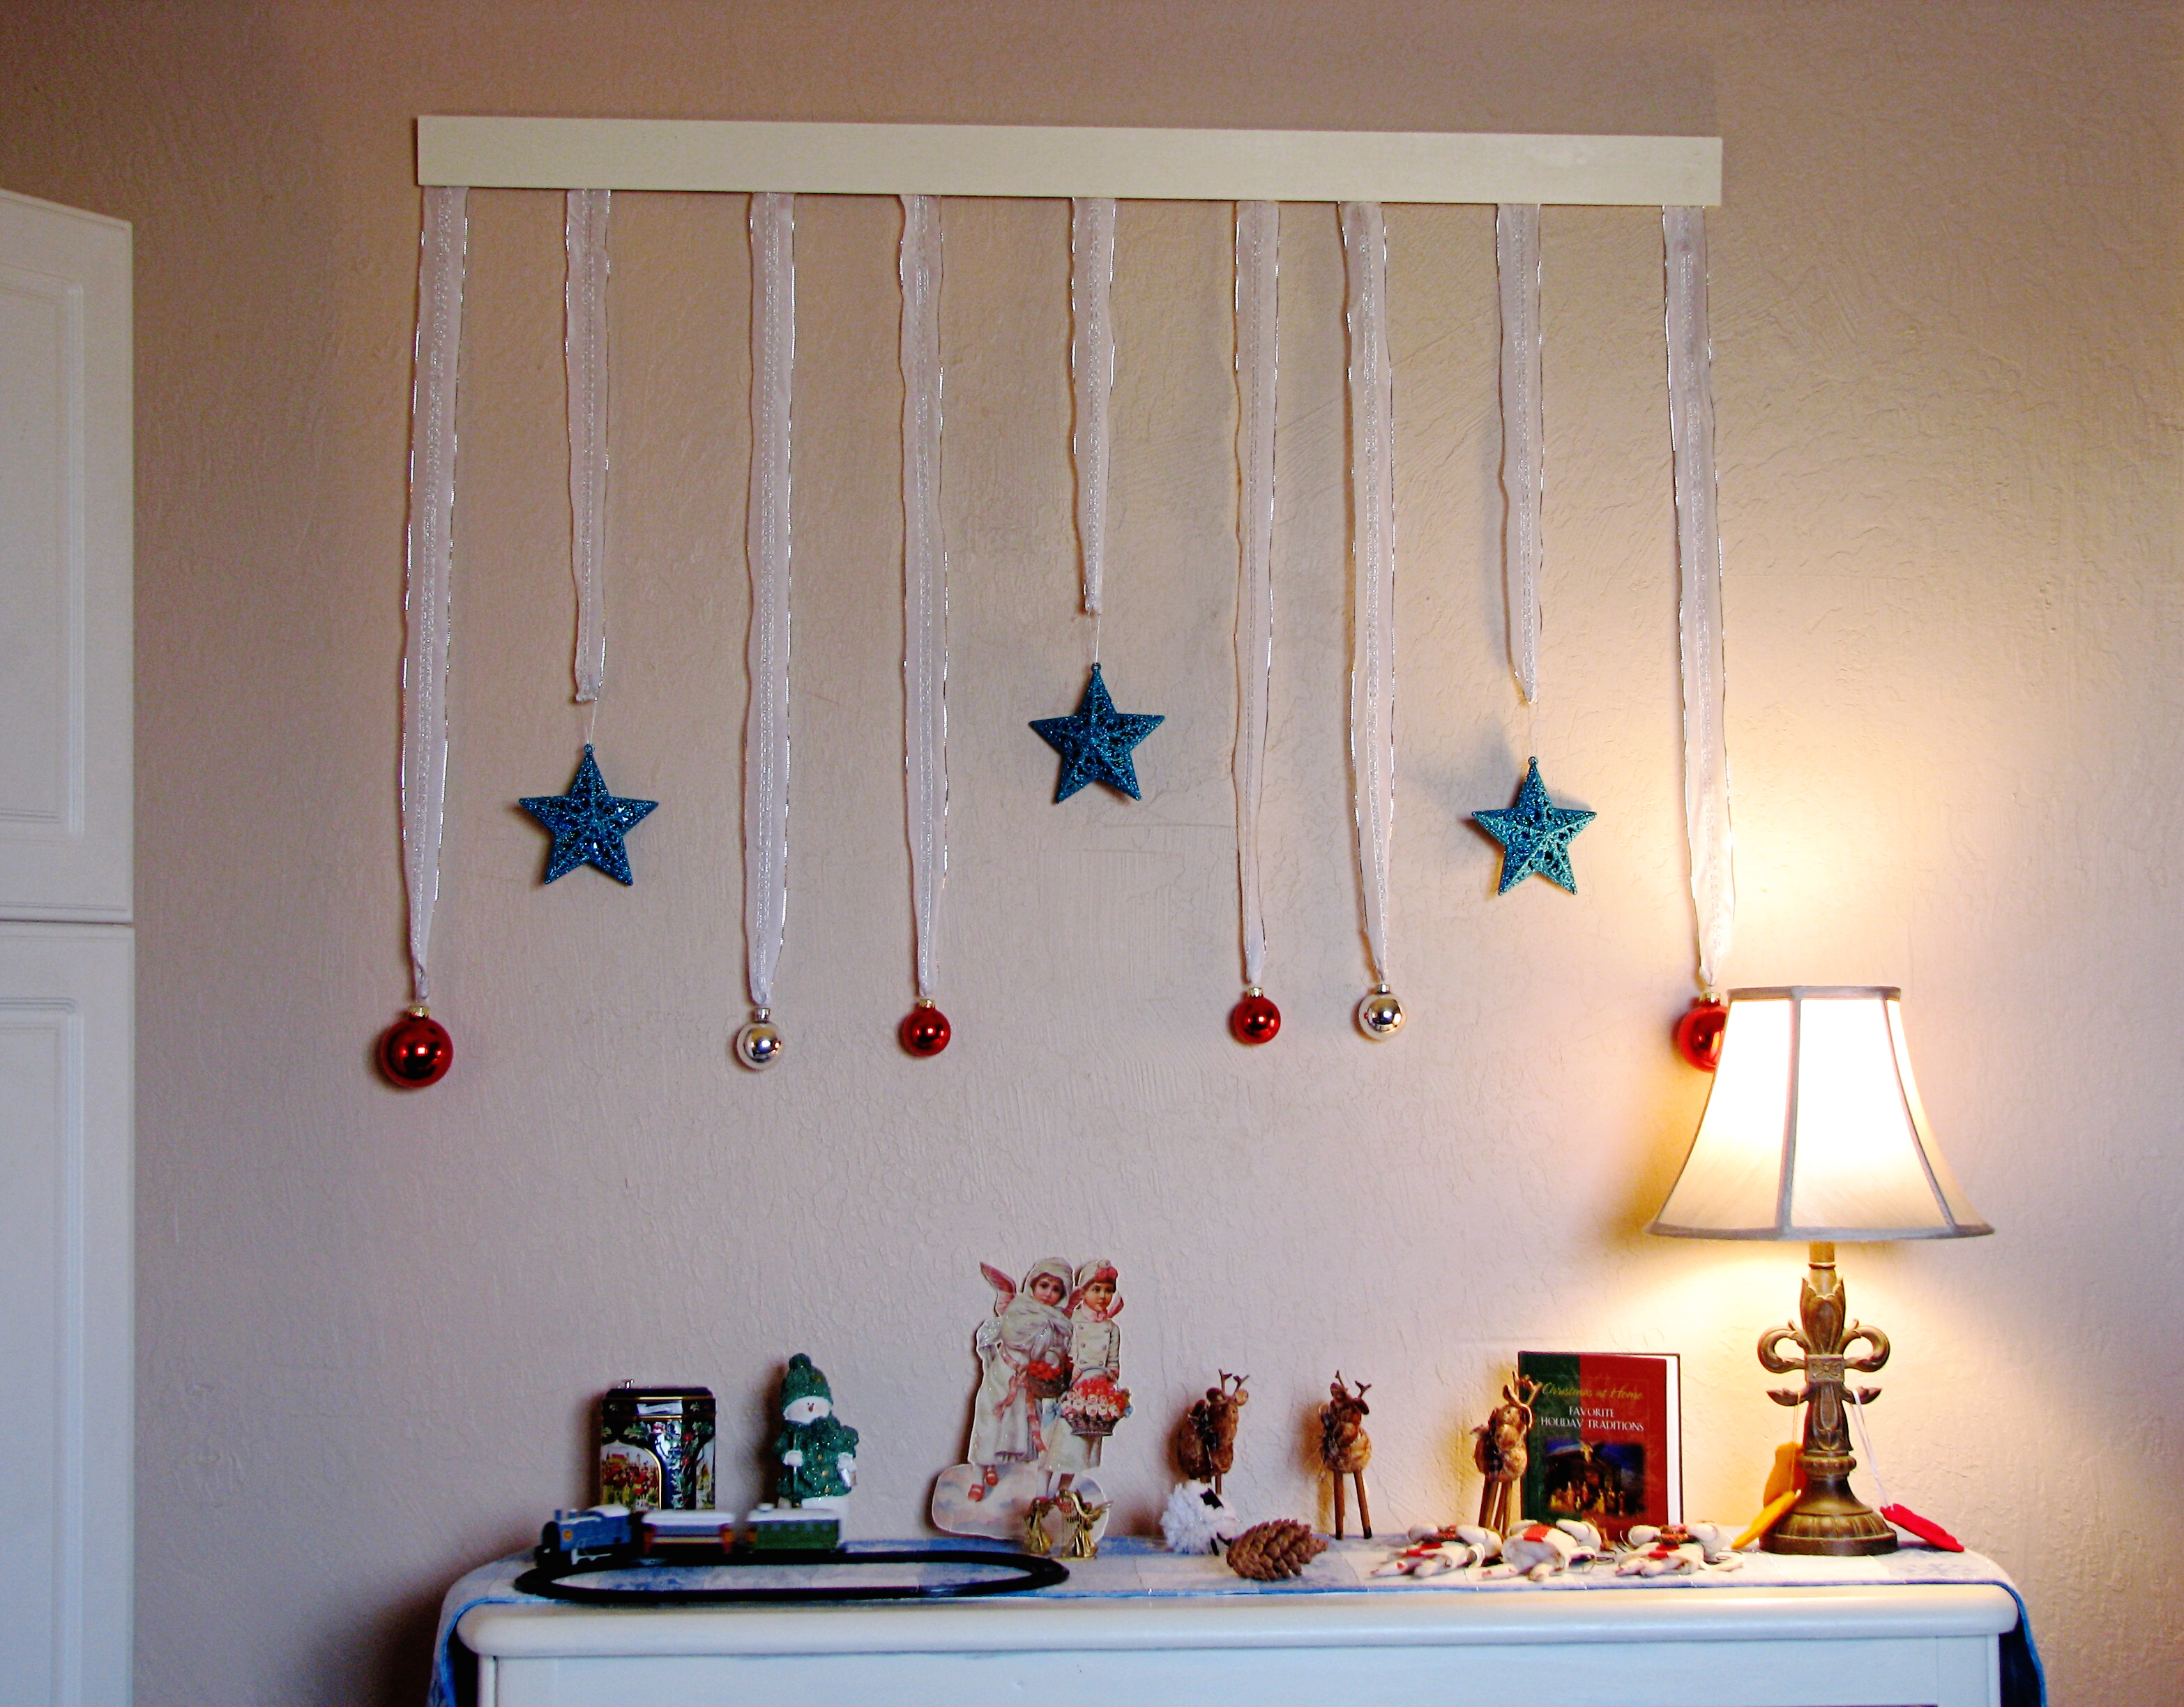 Christmas Wall Decorations Ideas For This Year